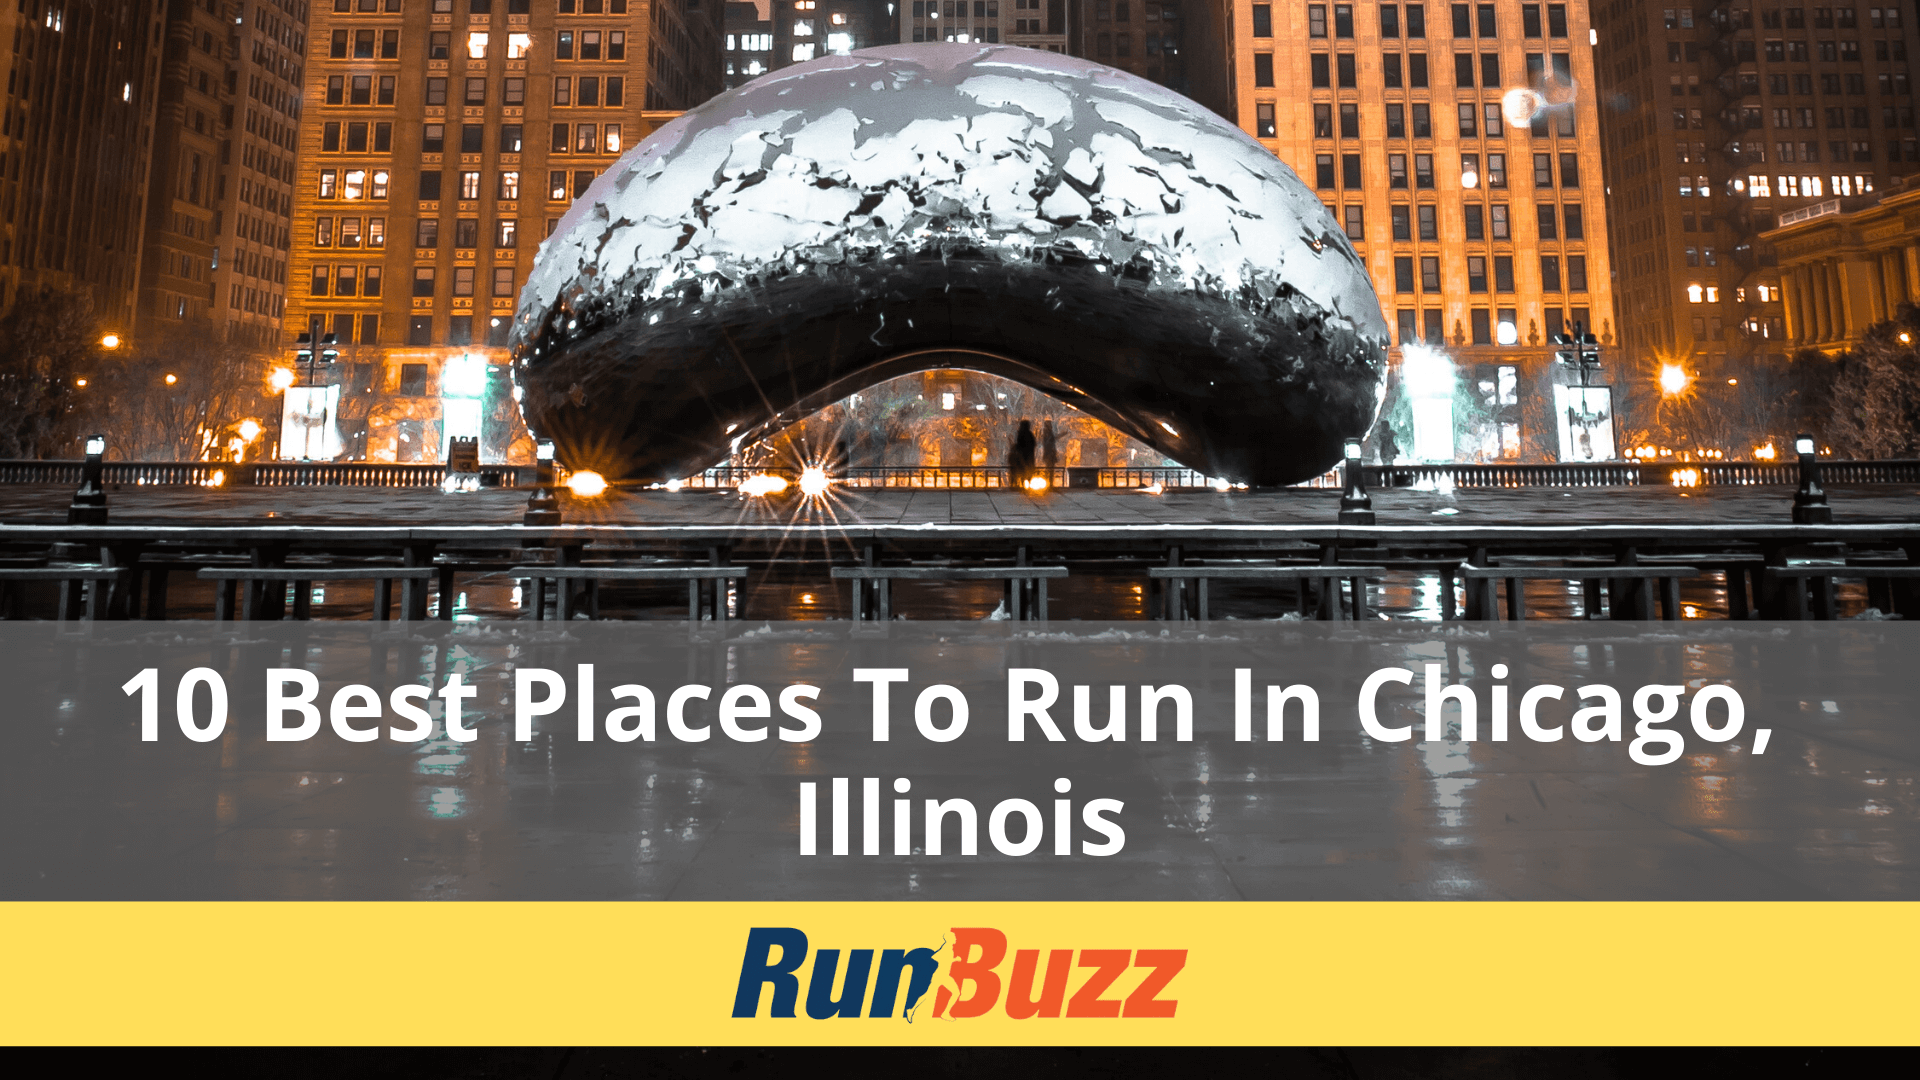 10-Best-Places-To-Run-In-Chicago-Illinois